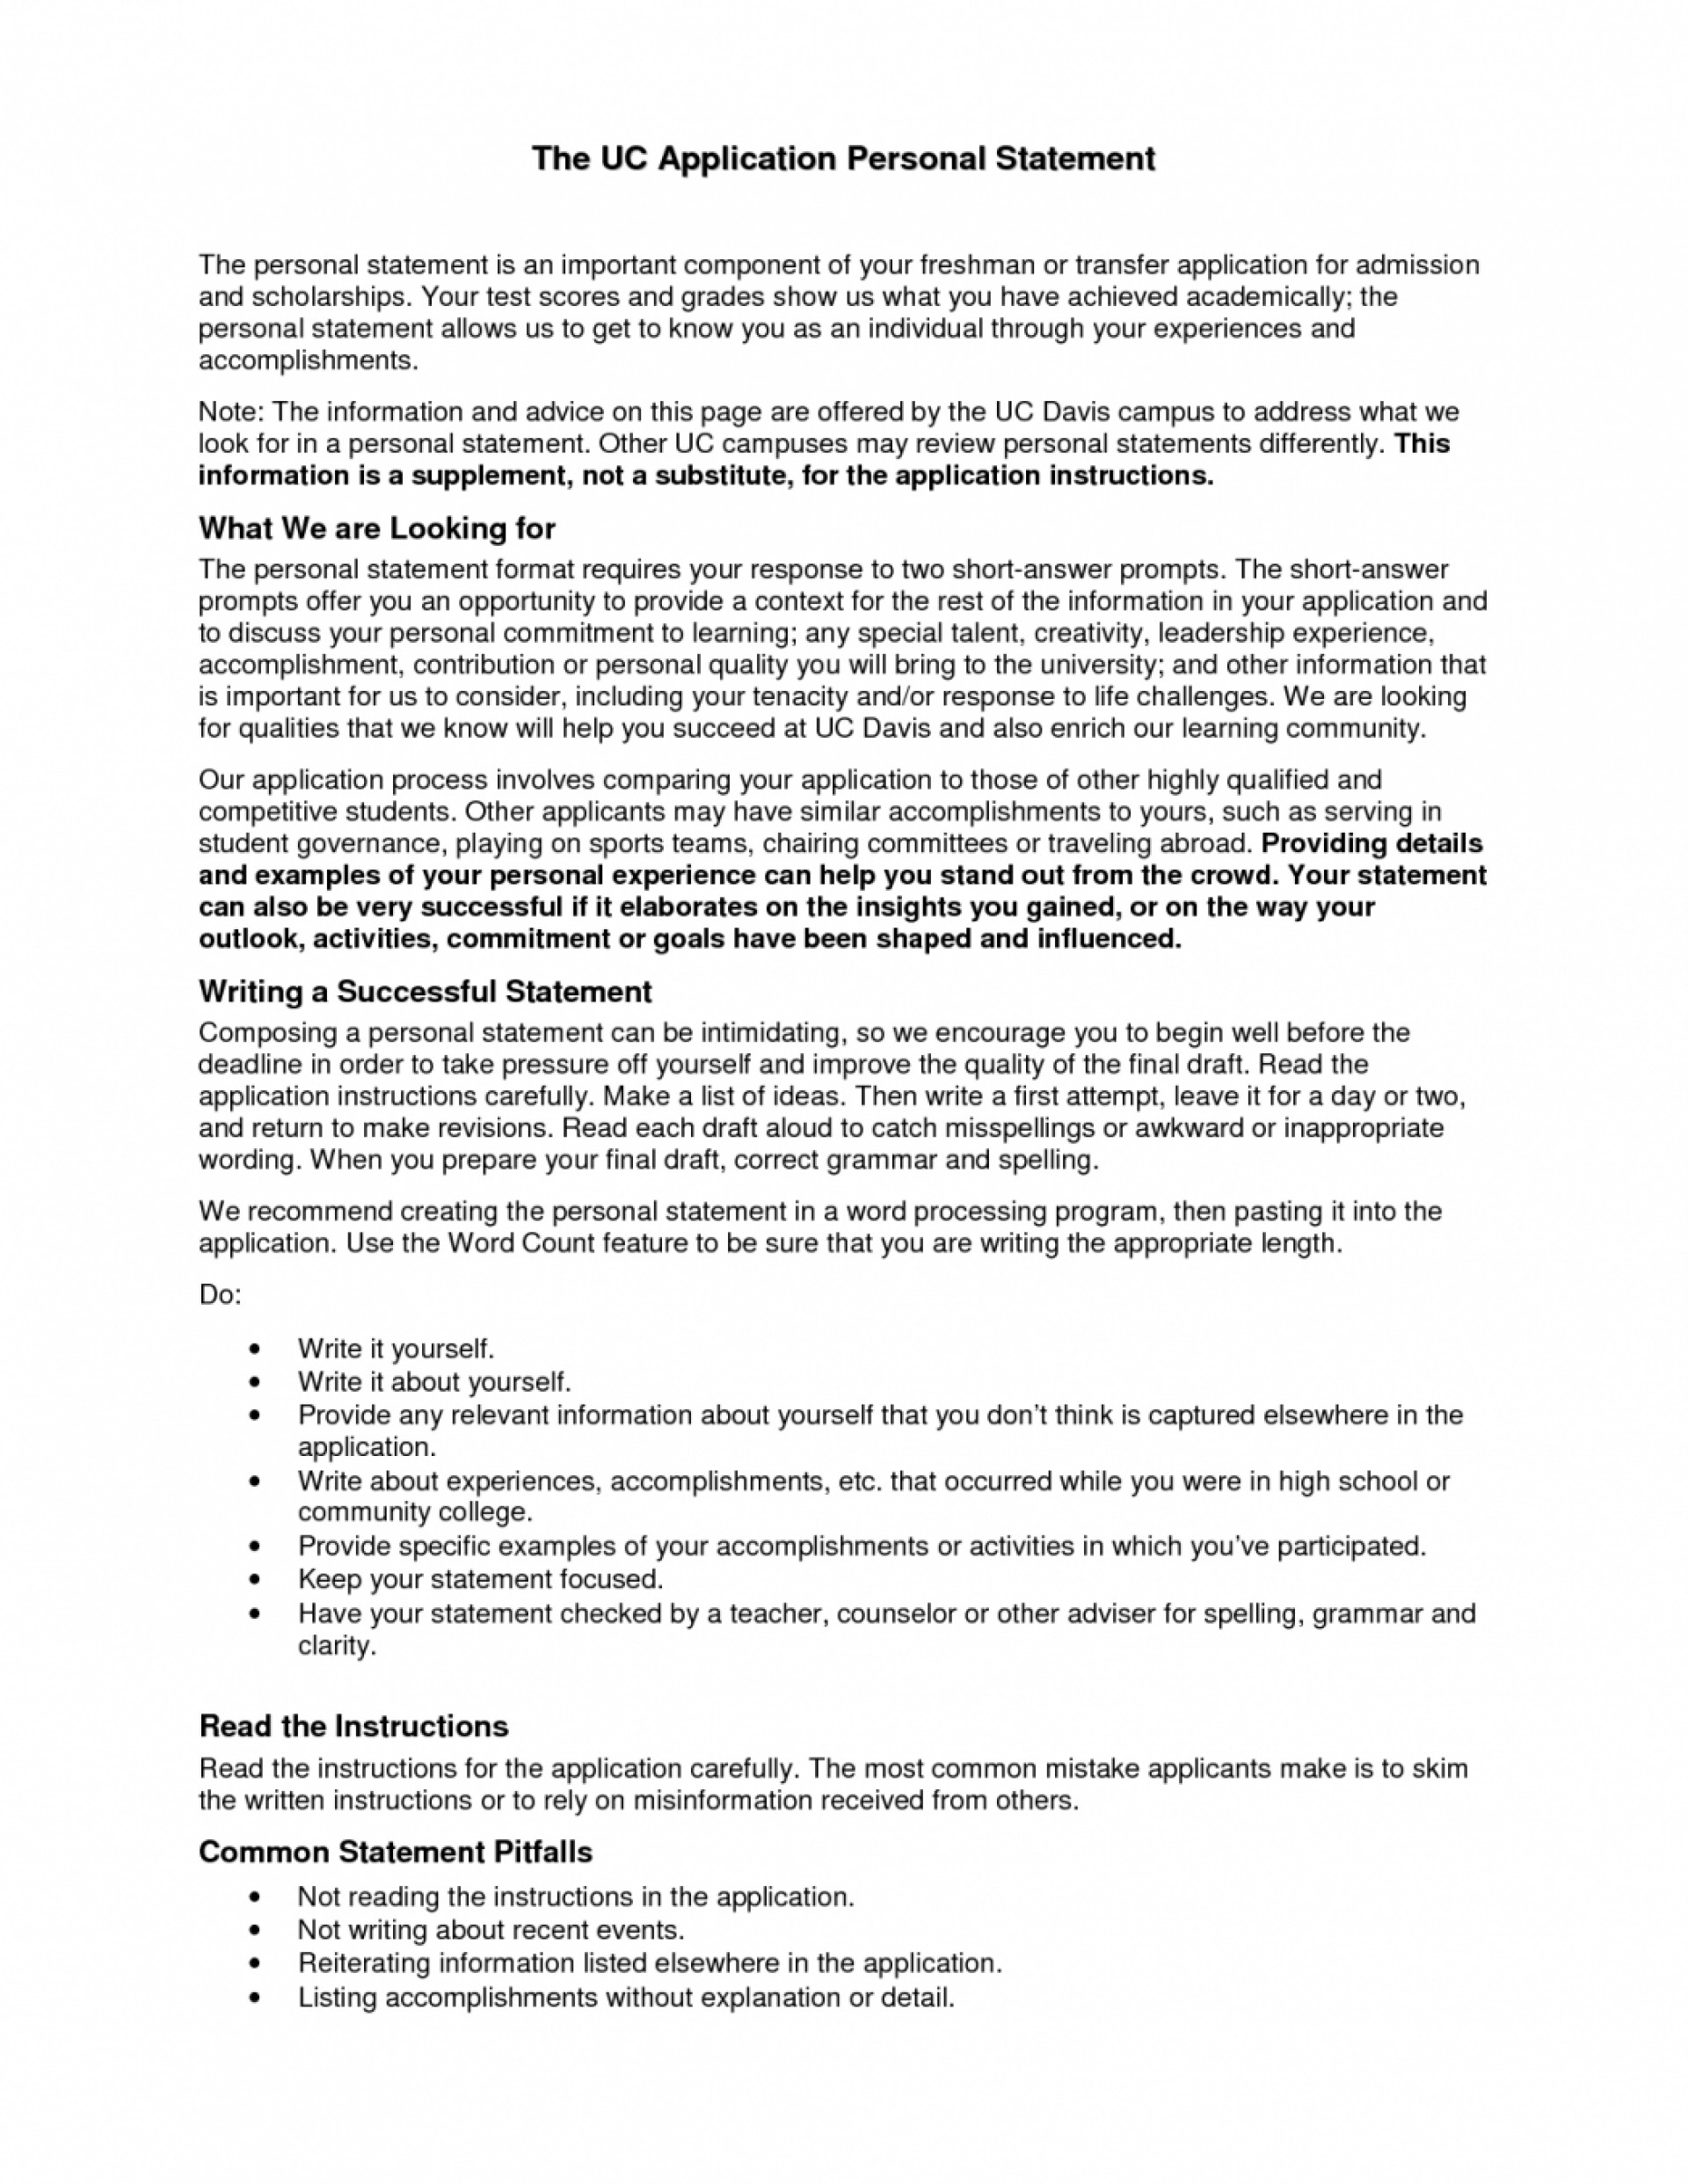 012 Who Am Issayxamples Mba Admission Tips Want To Buy Why Do You Attend This University Samples Ucla Personal Statement Template Kmc Study At Sample 1048x1356 Teacher Impressive Be A Essay Pdf Become An English Home Based Online 1920